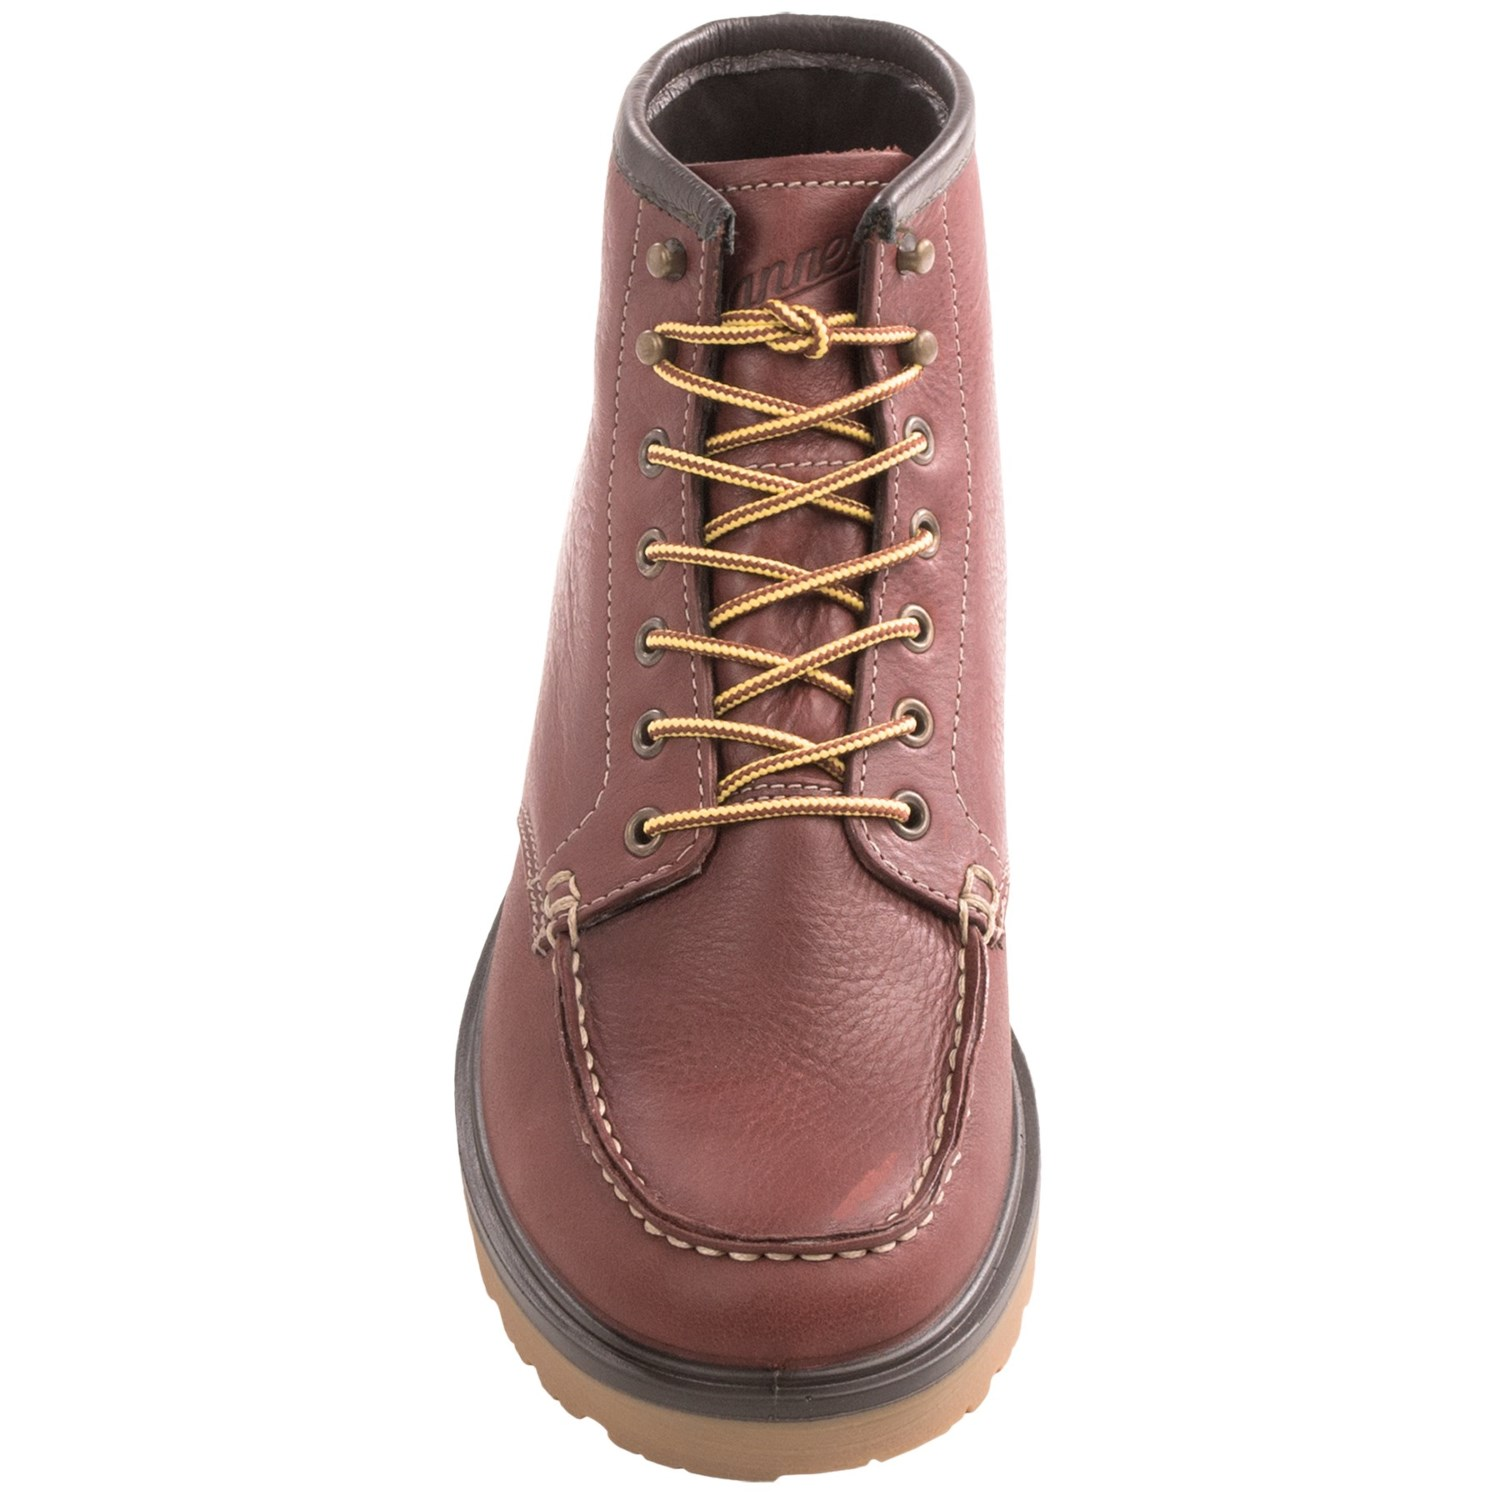 Danner Lace Work Boots For Men 7985u Save 77